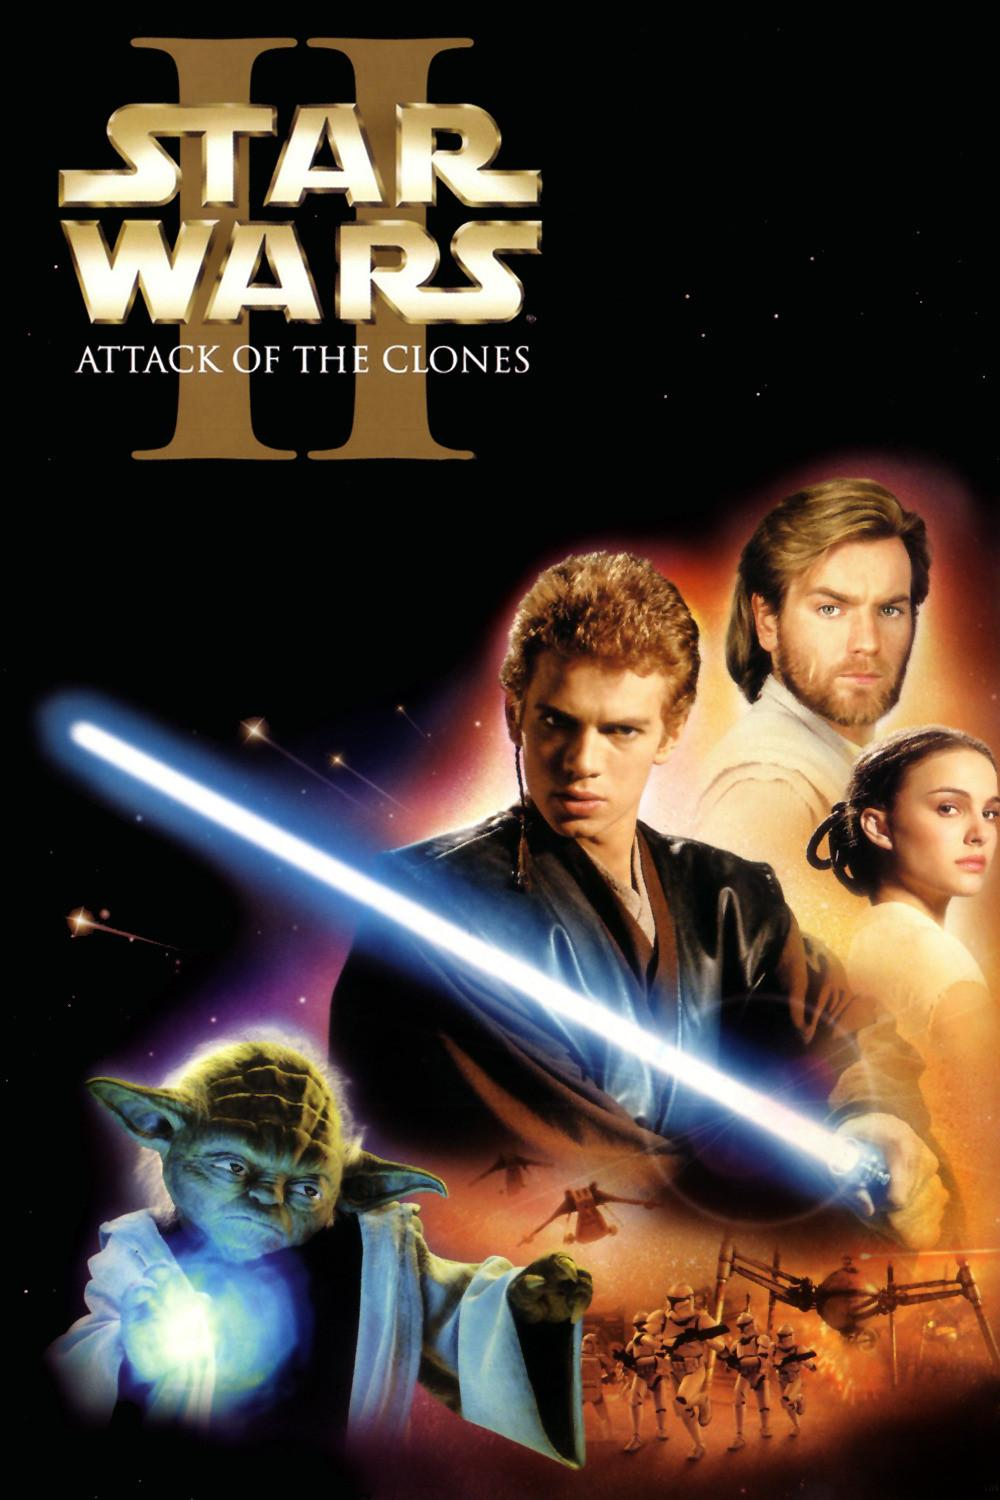 Star Wars: Episode II- Attack of the Clones / Star Wars: Επεισόδιο ΙI- Η Επίθεση των Κλώνων (2002)